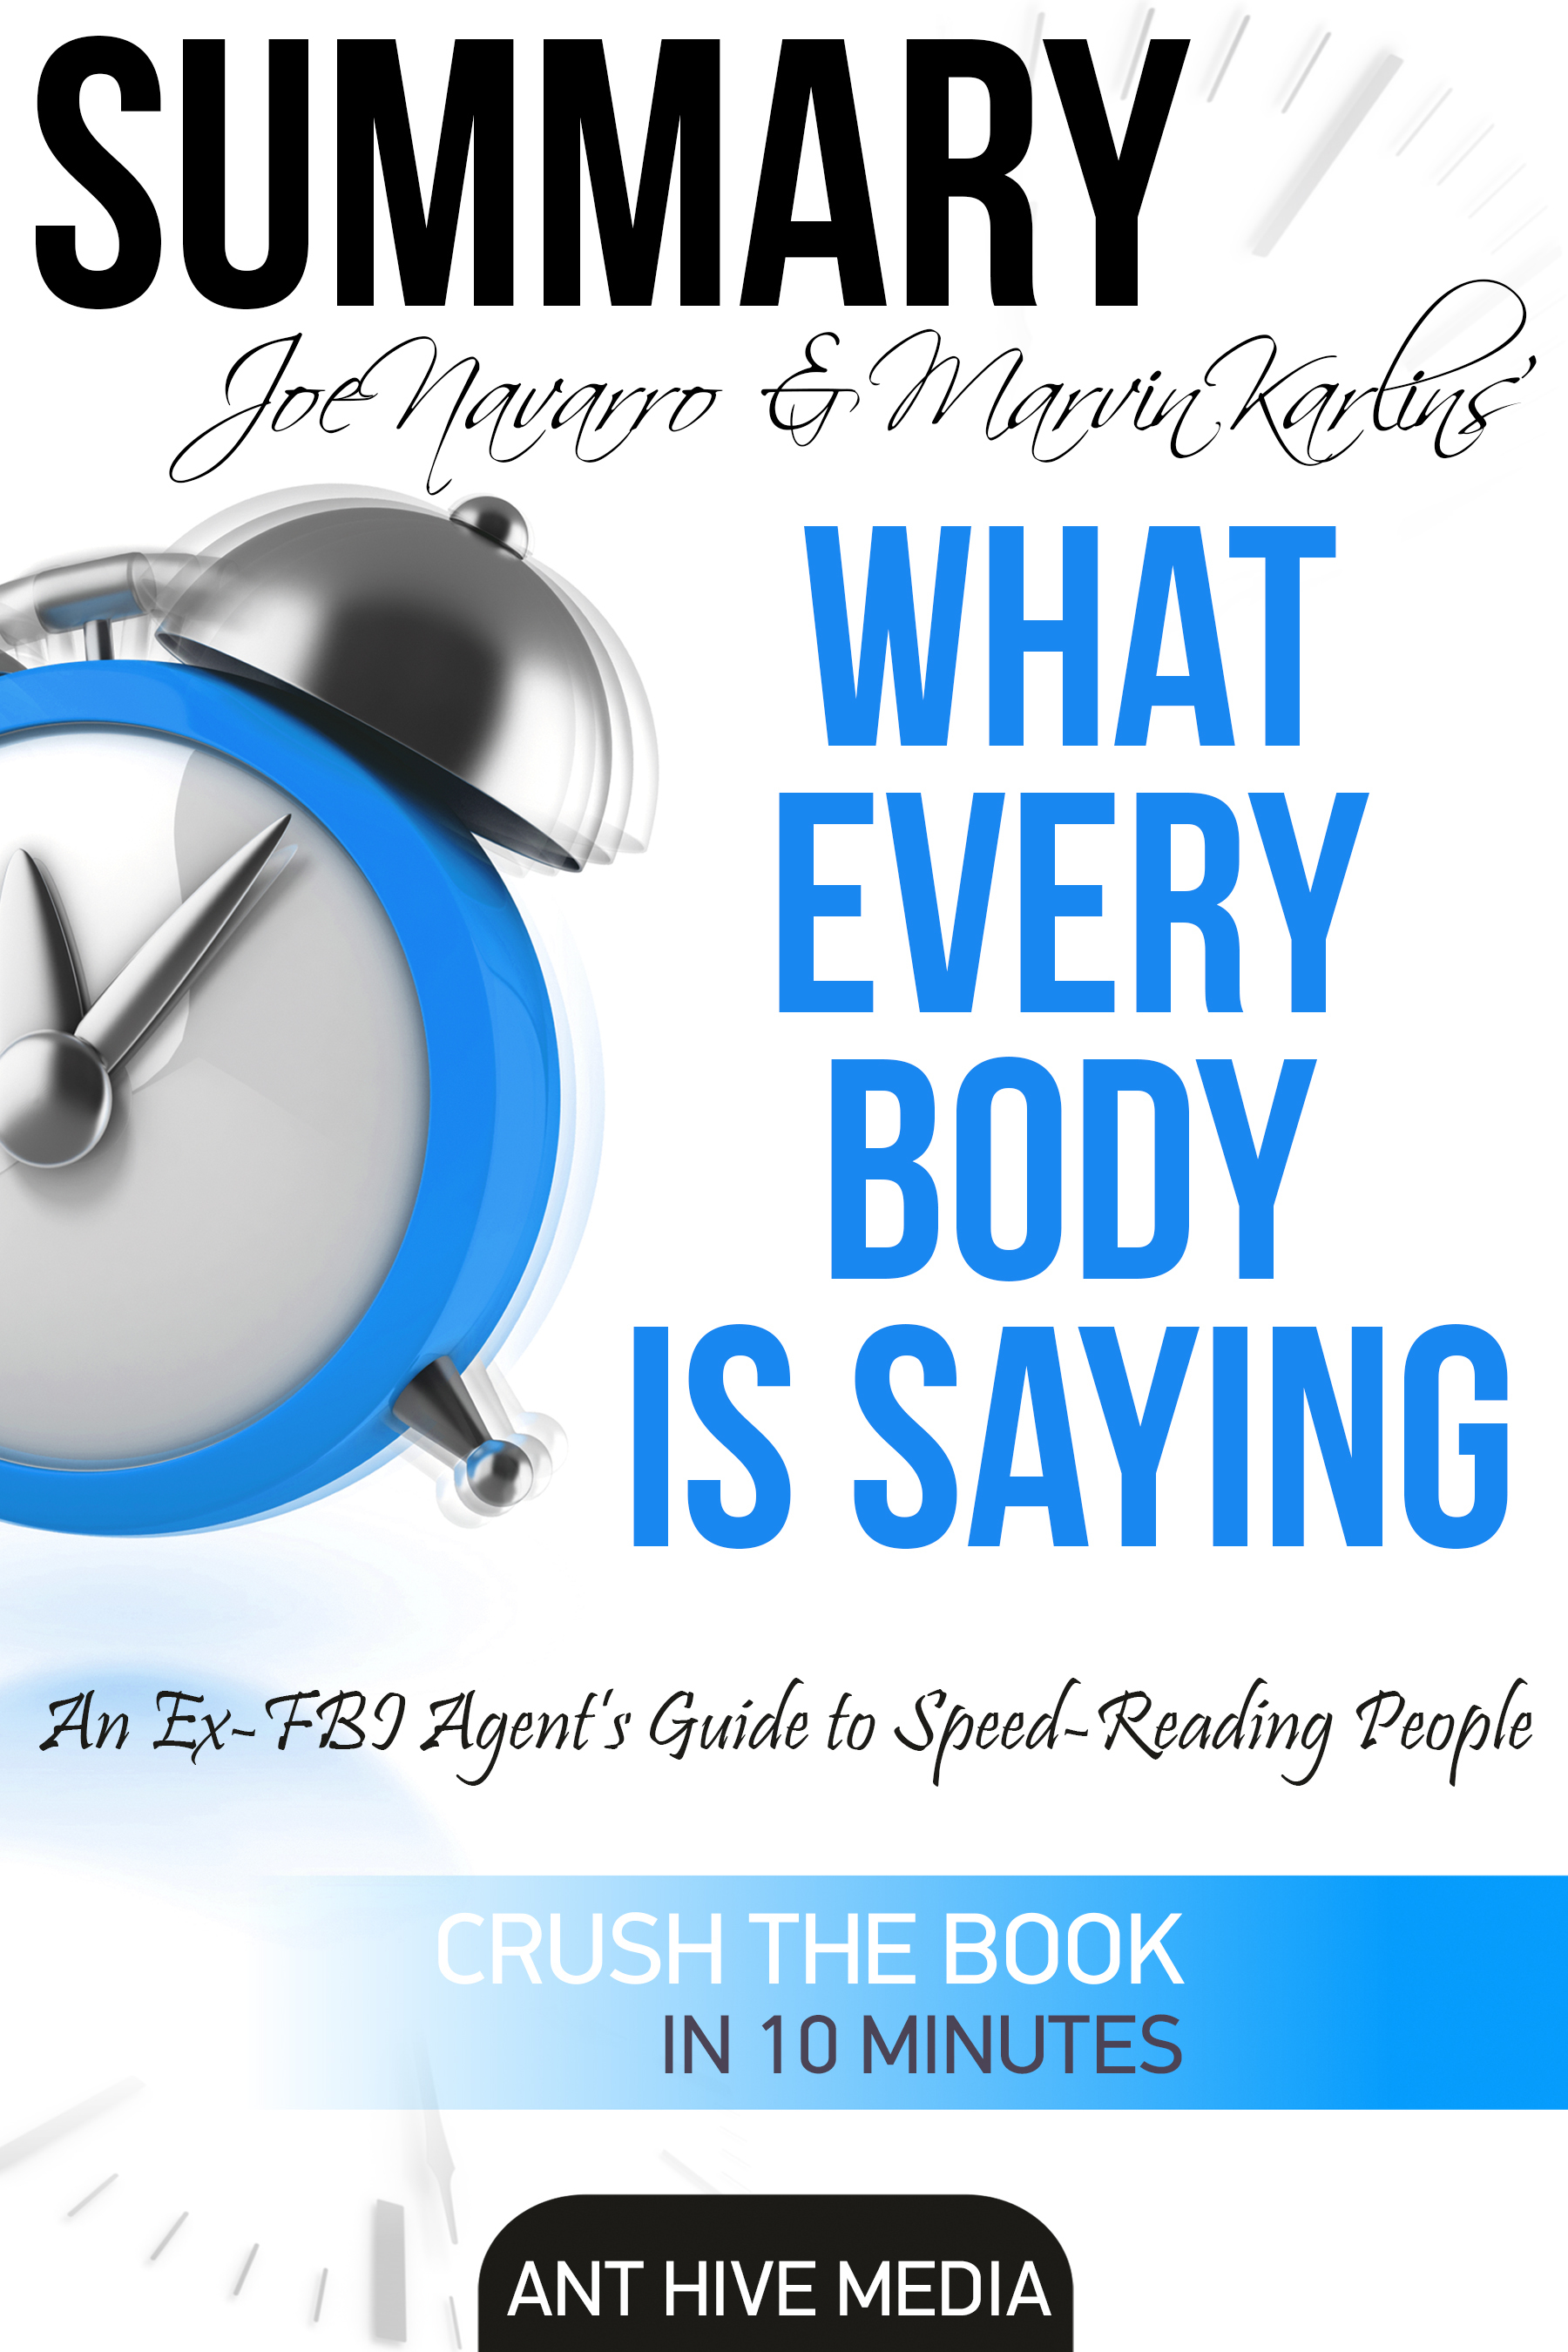 Joe Navarro & Marvin Karlins s What Every Body is Saying: An Ex-FBI Agent's Guide to Speed-Reading People